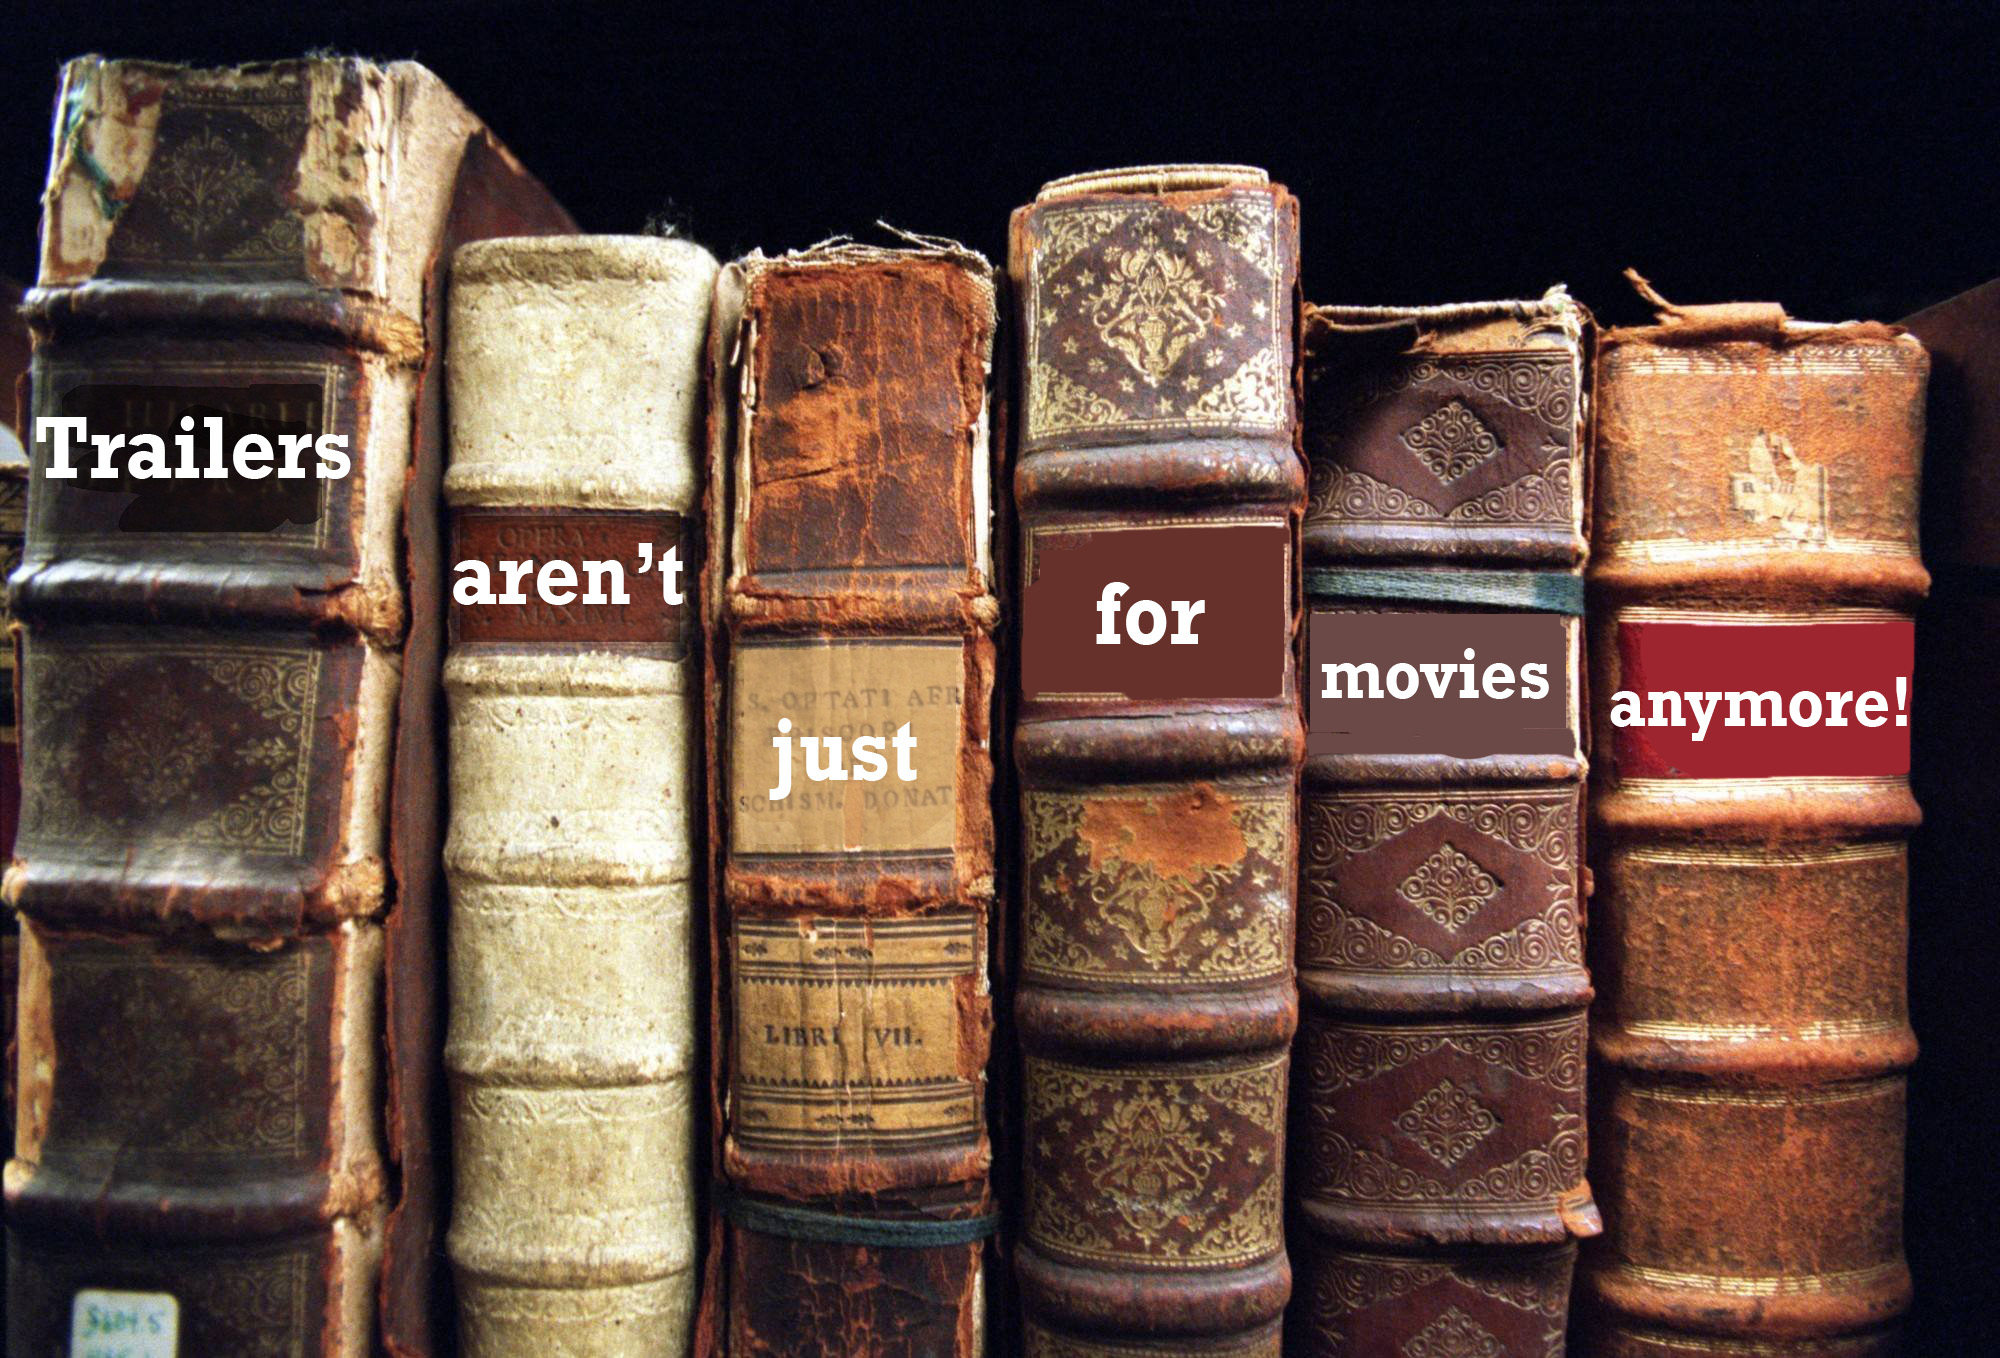 """trailers aren't just for movies anymore"" written on spines of books"